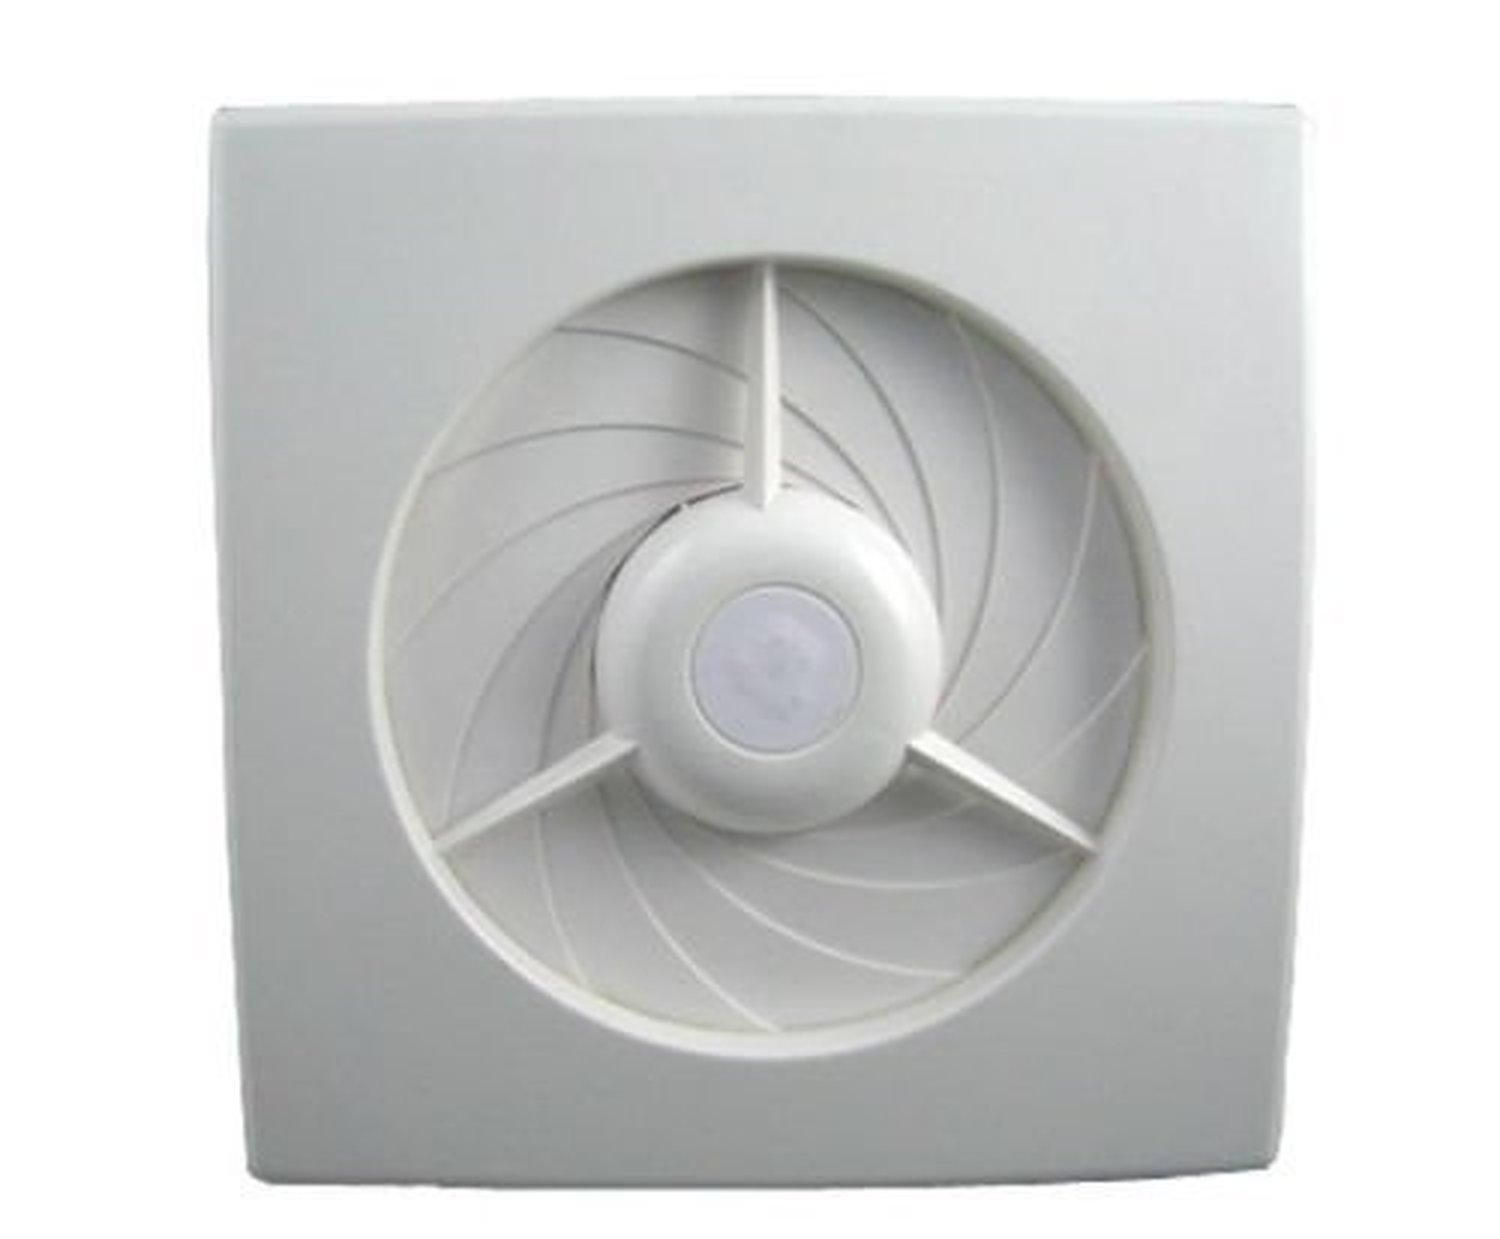 4 6 Inch Extractor Exhaust Fan Window Wall Kitchen within size 1500 X 1239